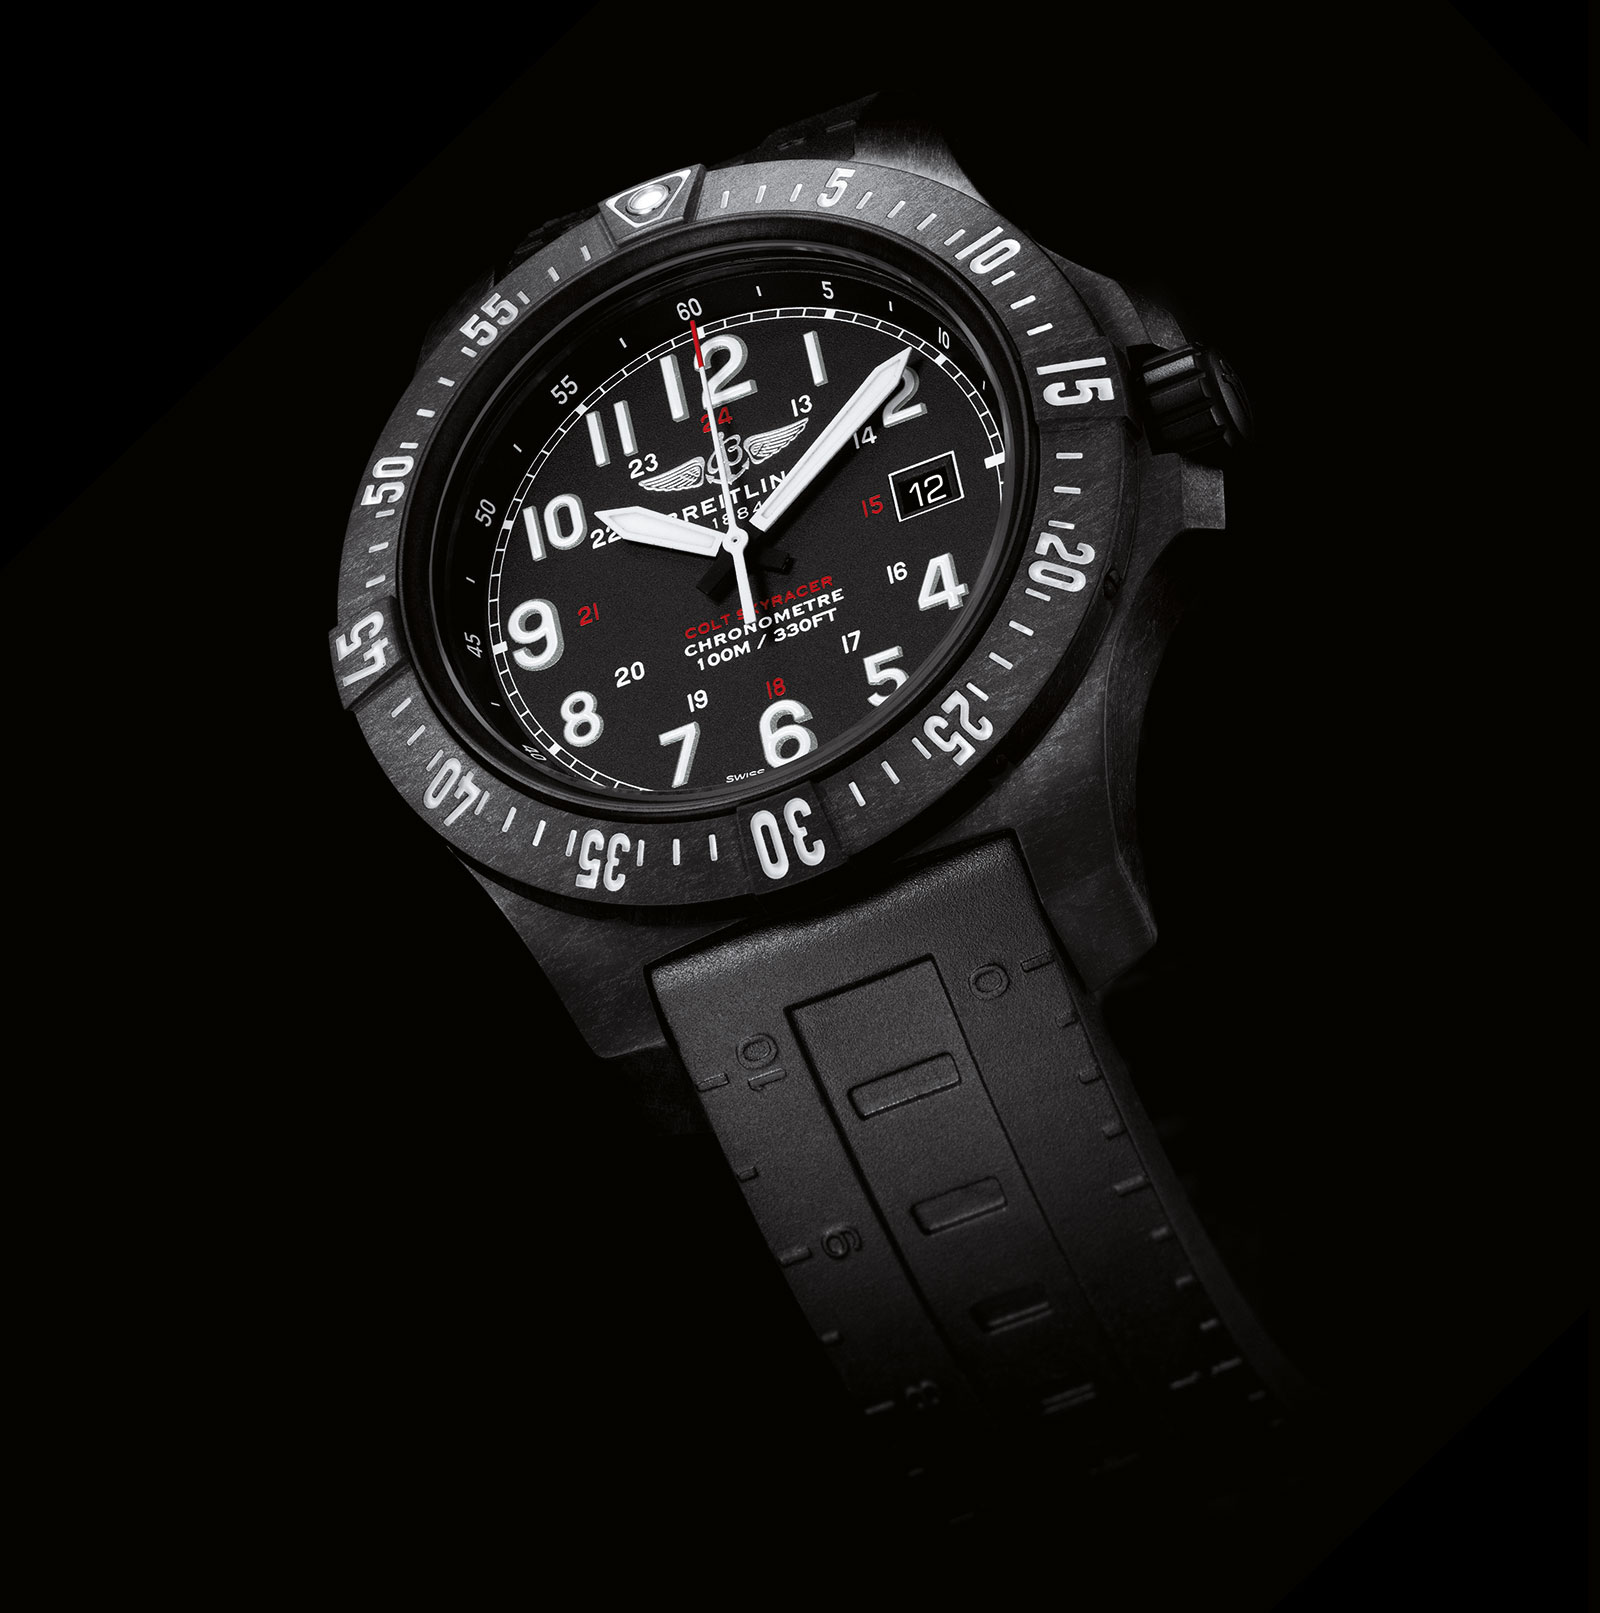 b ice watches ca s white black we carbon l watch